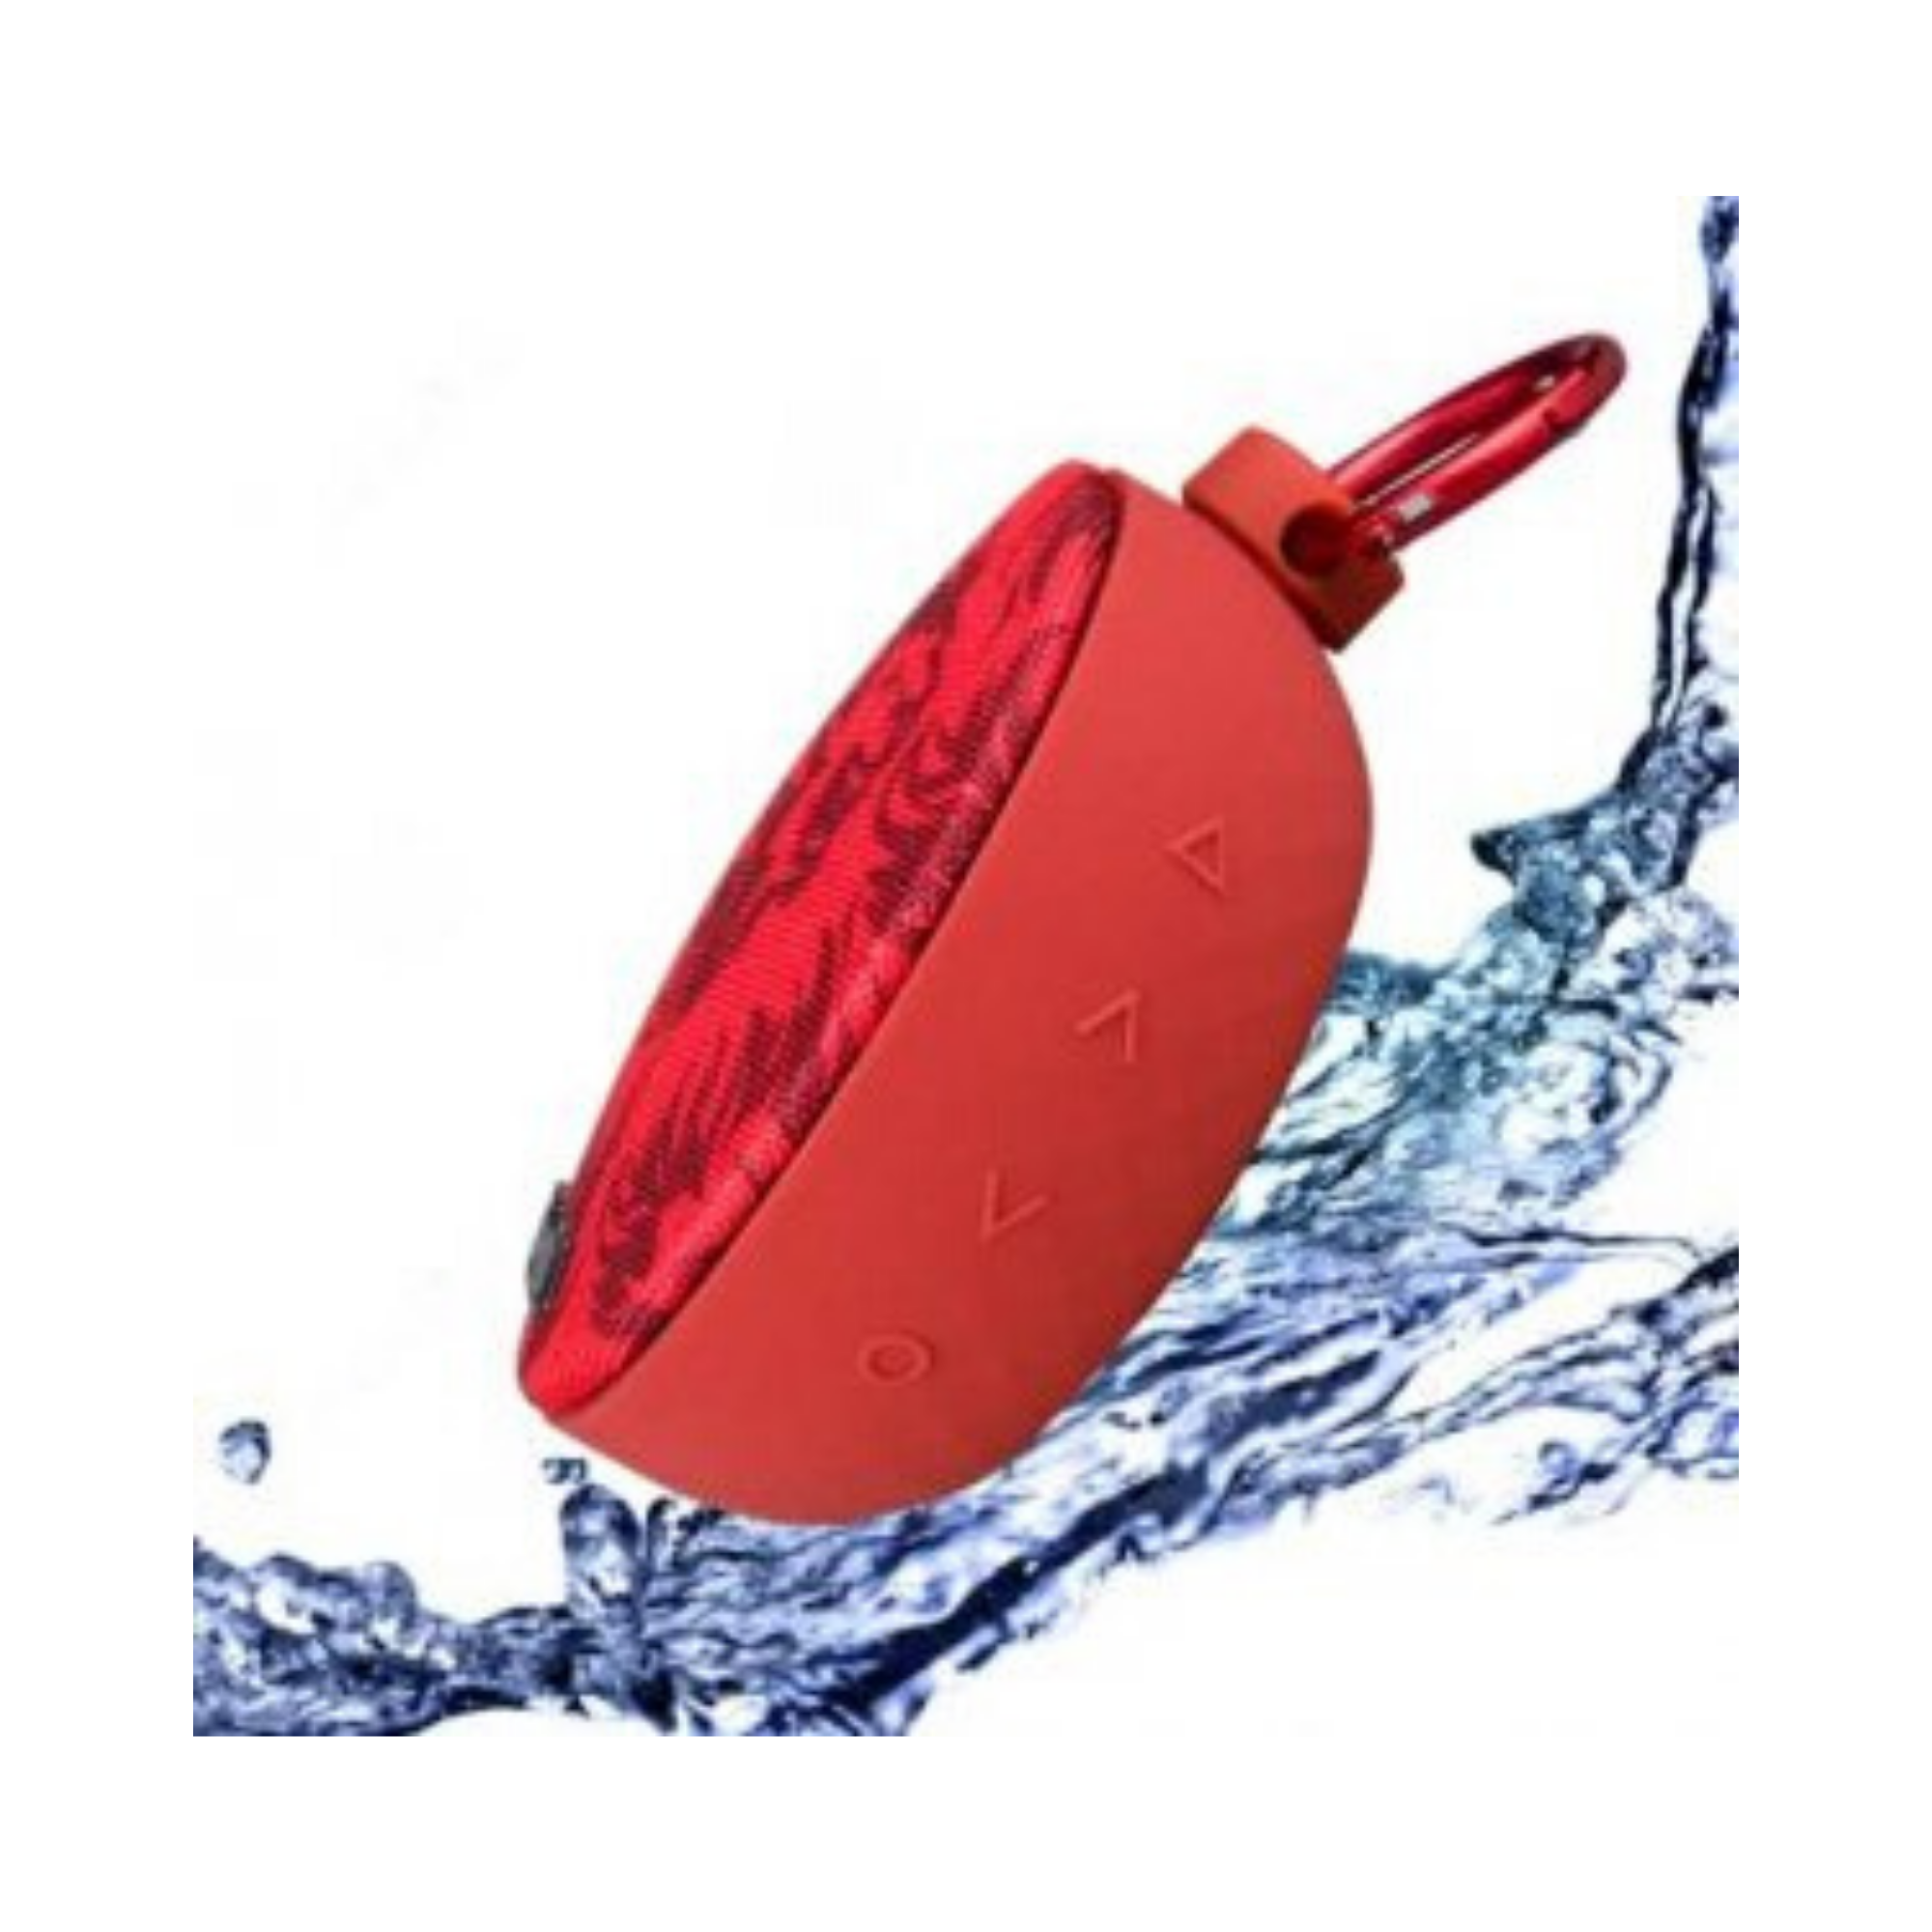 boAt Stone 260 KXIP Edition 4 W Bluetooth Speaker  (Lion Red, Mono Channel)